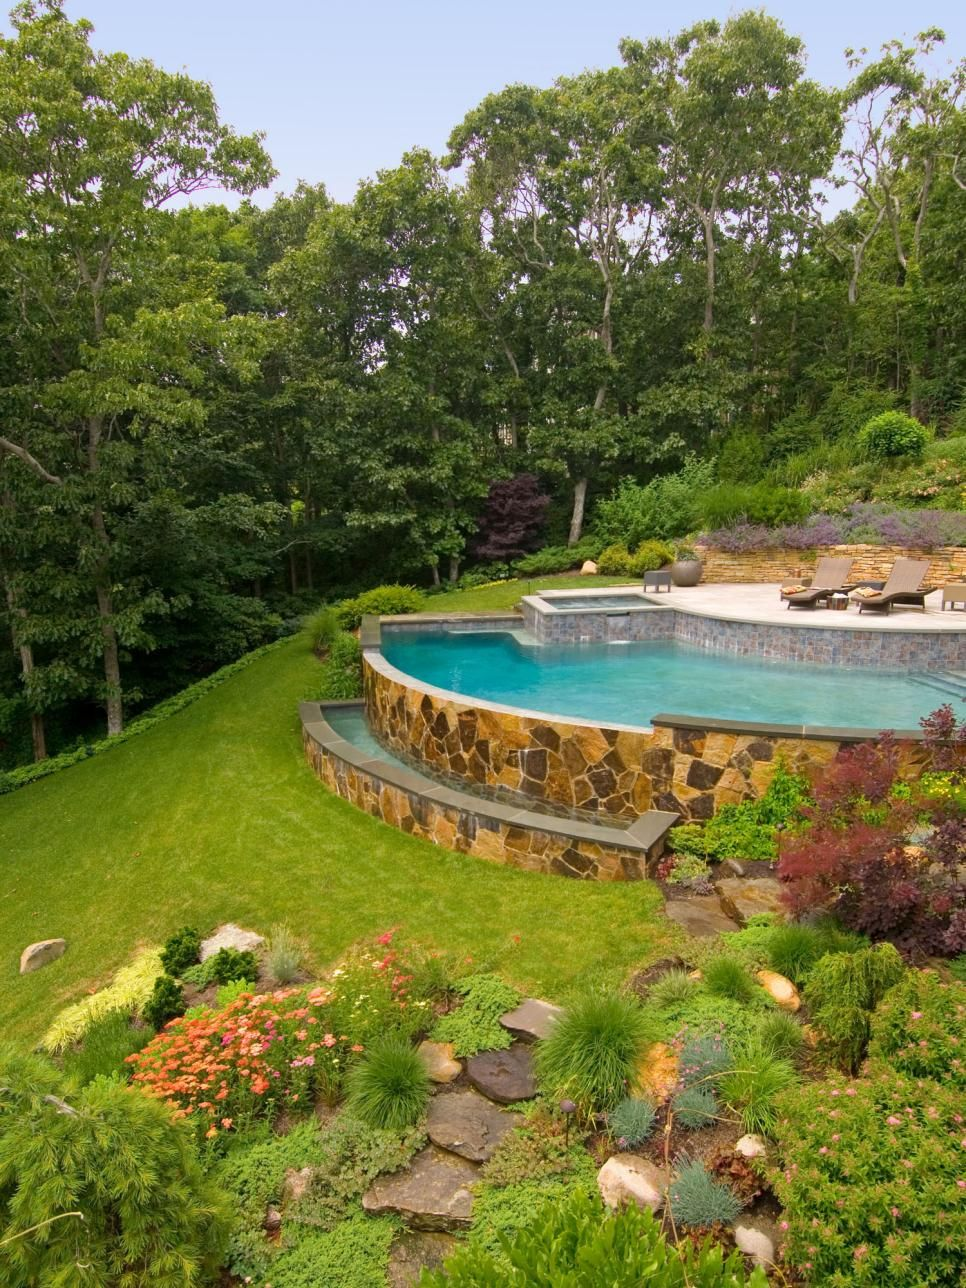 An arcshaped pool with a spa is built into the hillside